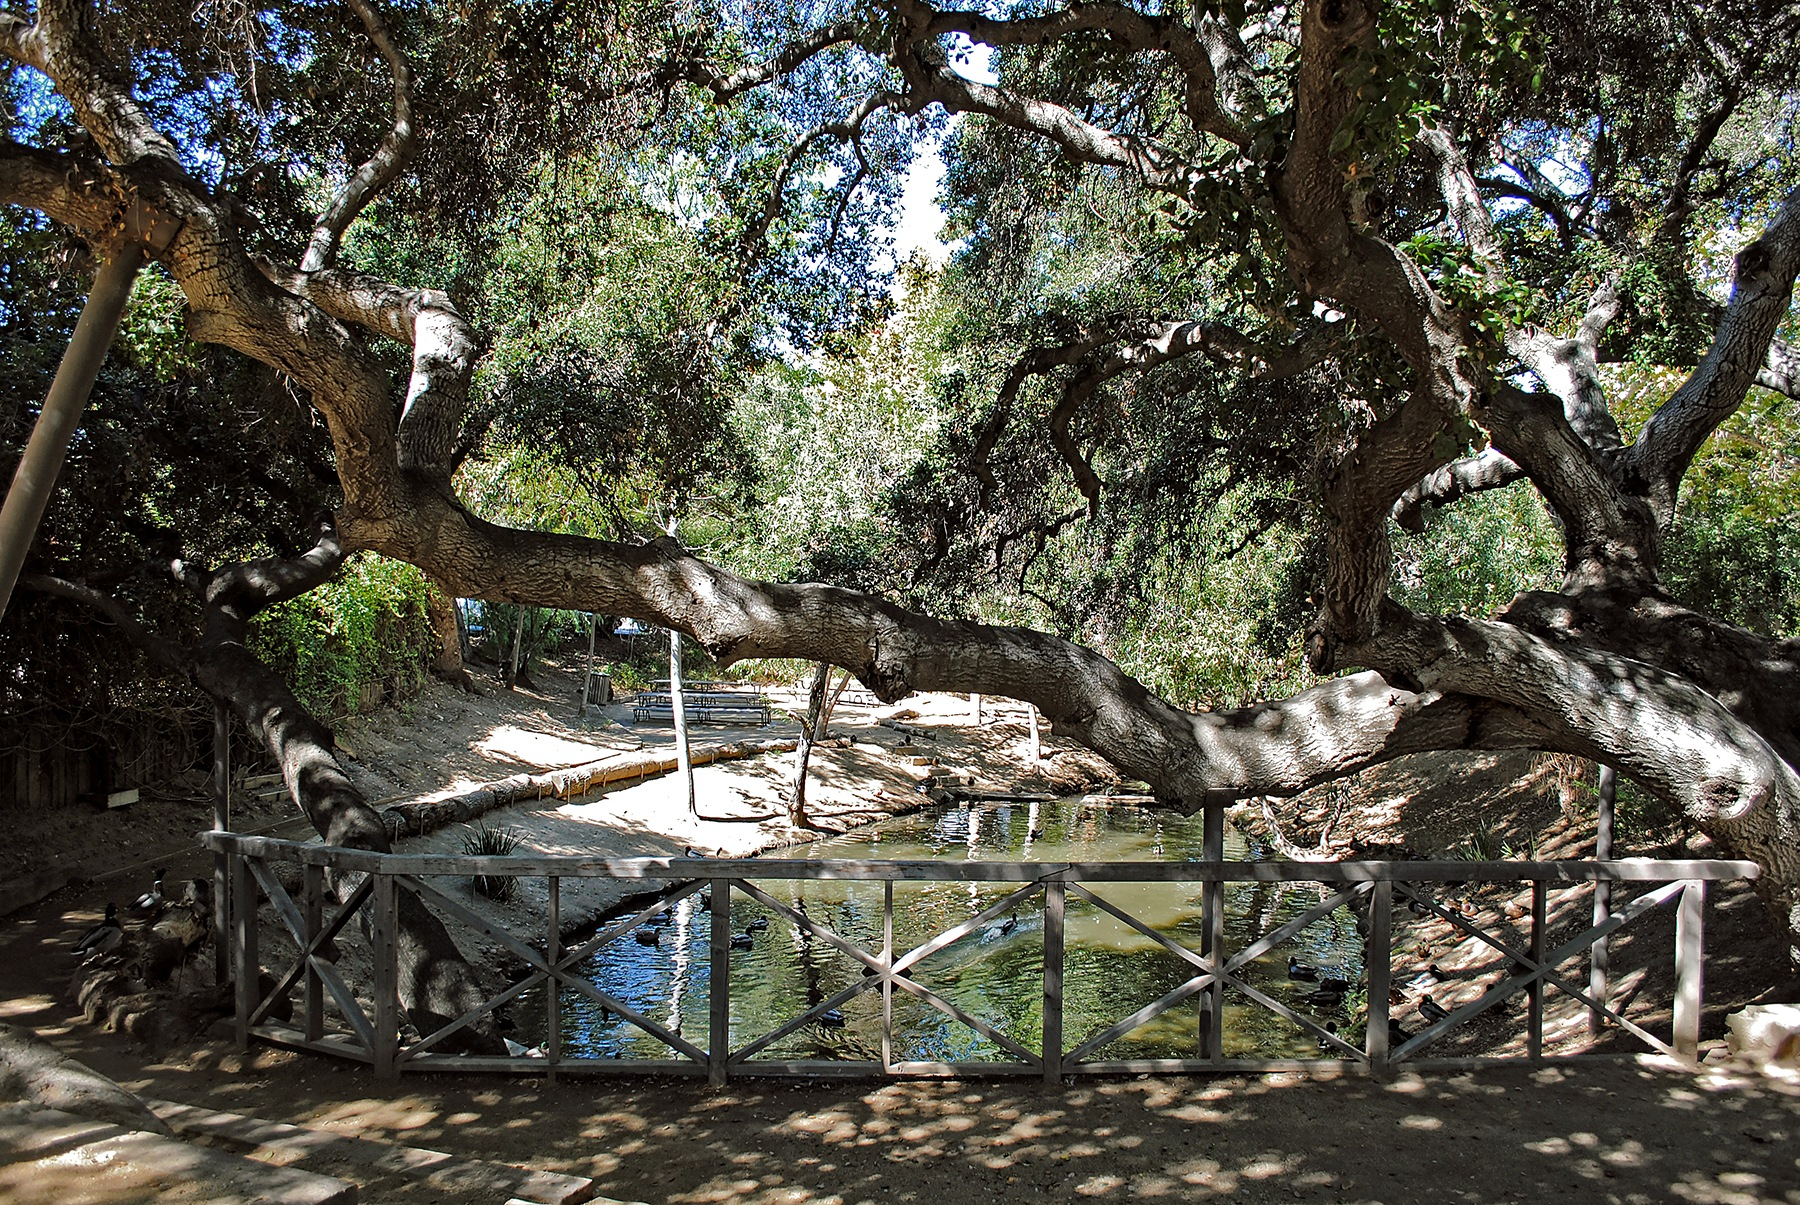 Large oak tree branch by Lormet-Images